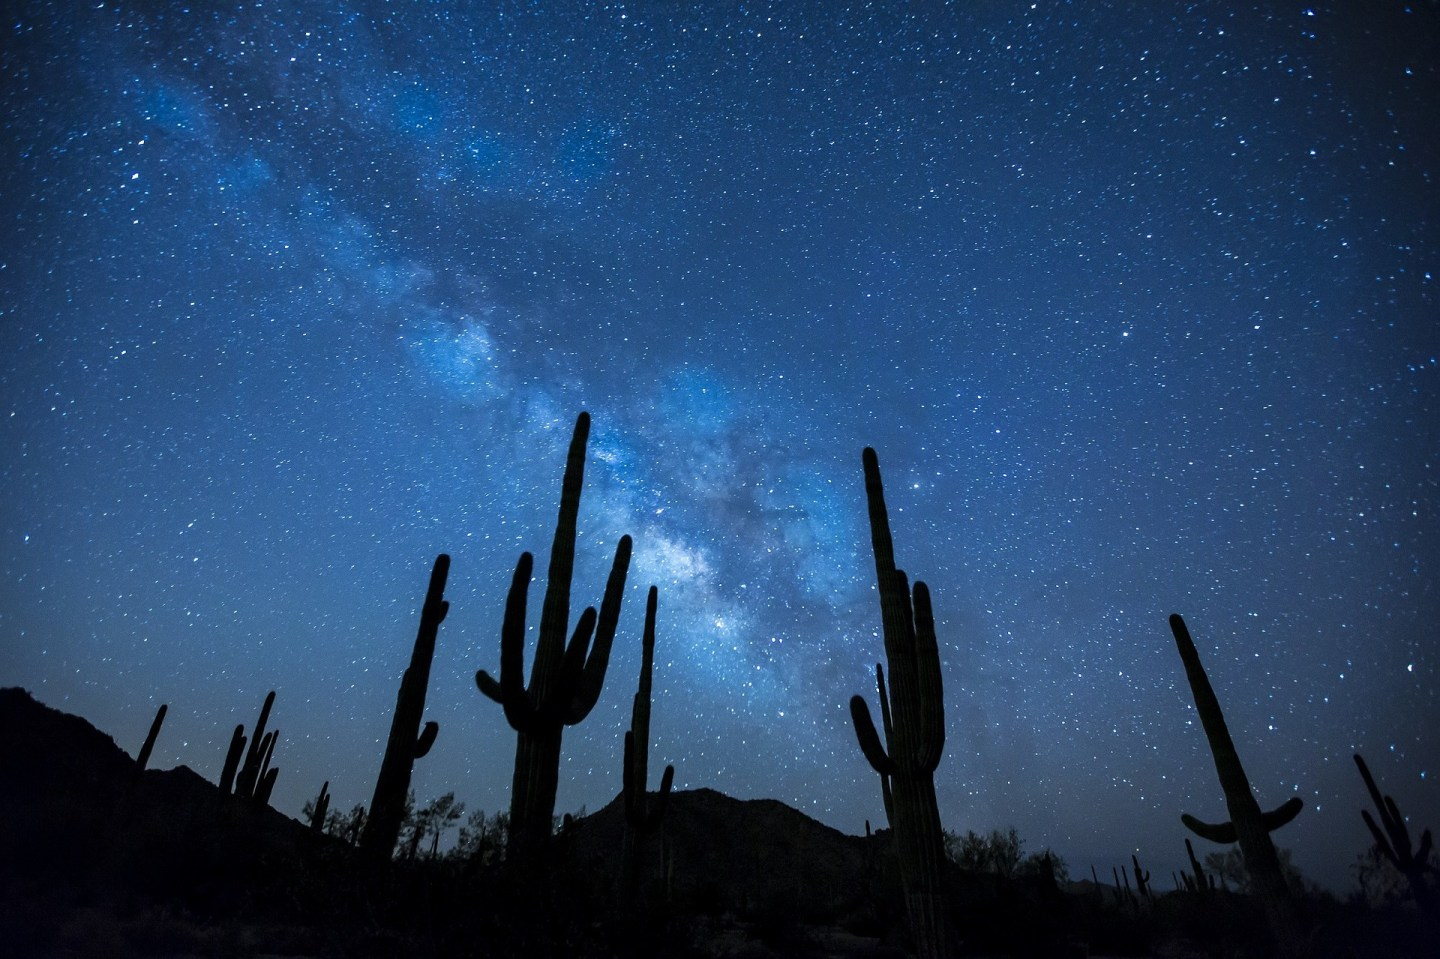 USA: Stellar attractions in Big Bend National Park